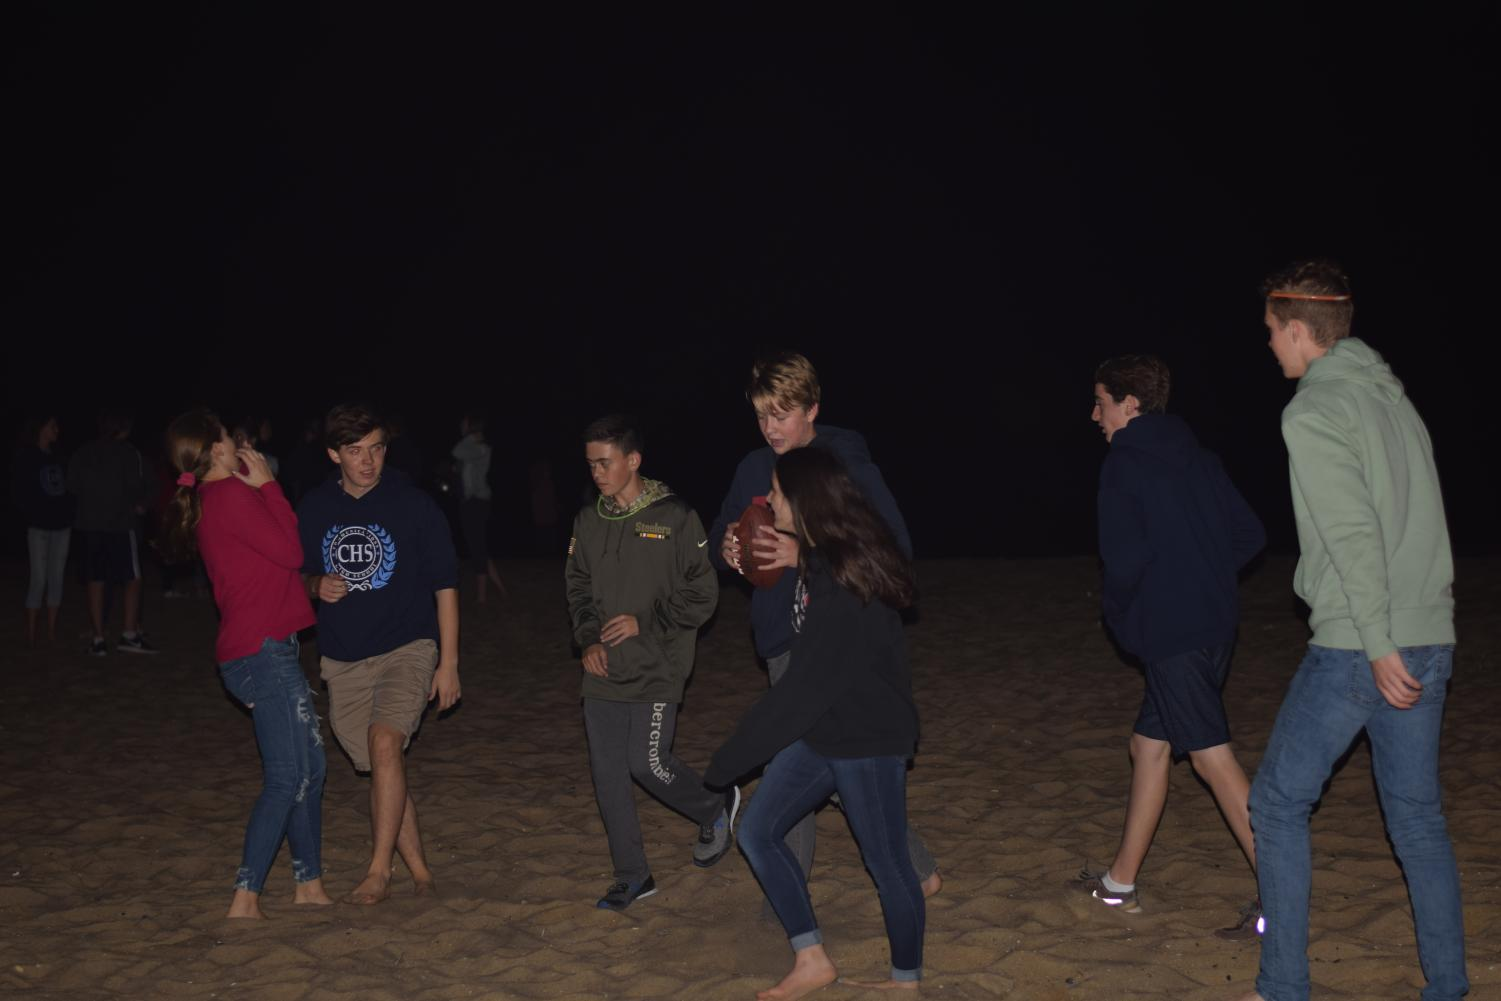 Freshmen play football on the beach during the PSFA event on Oct. 5.